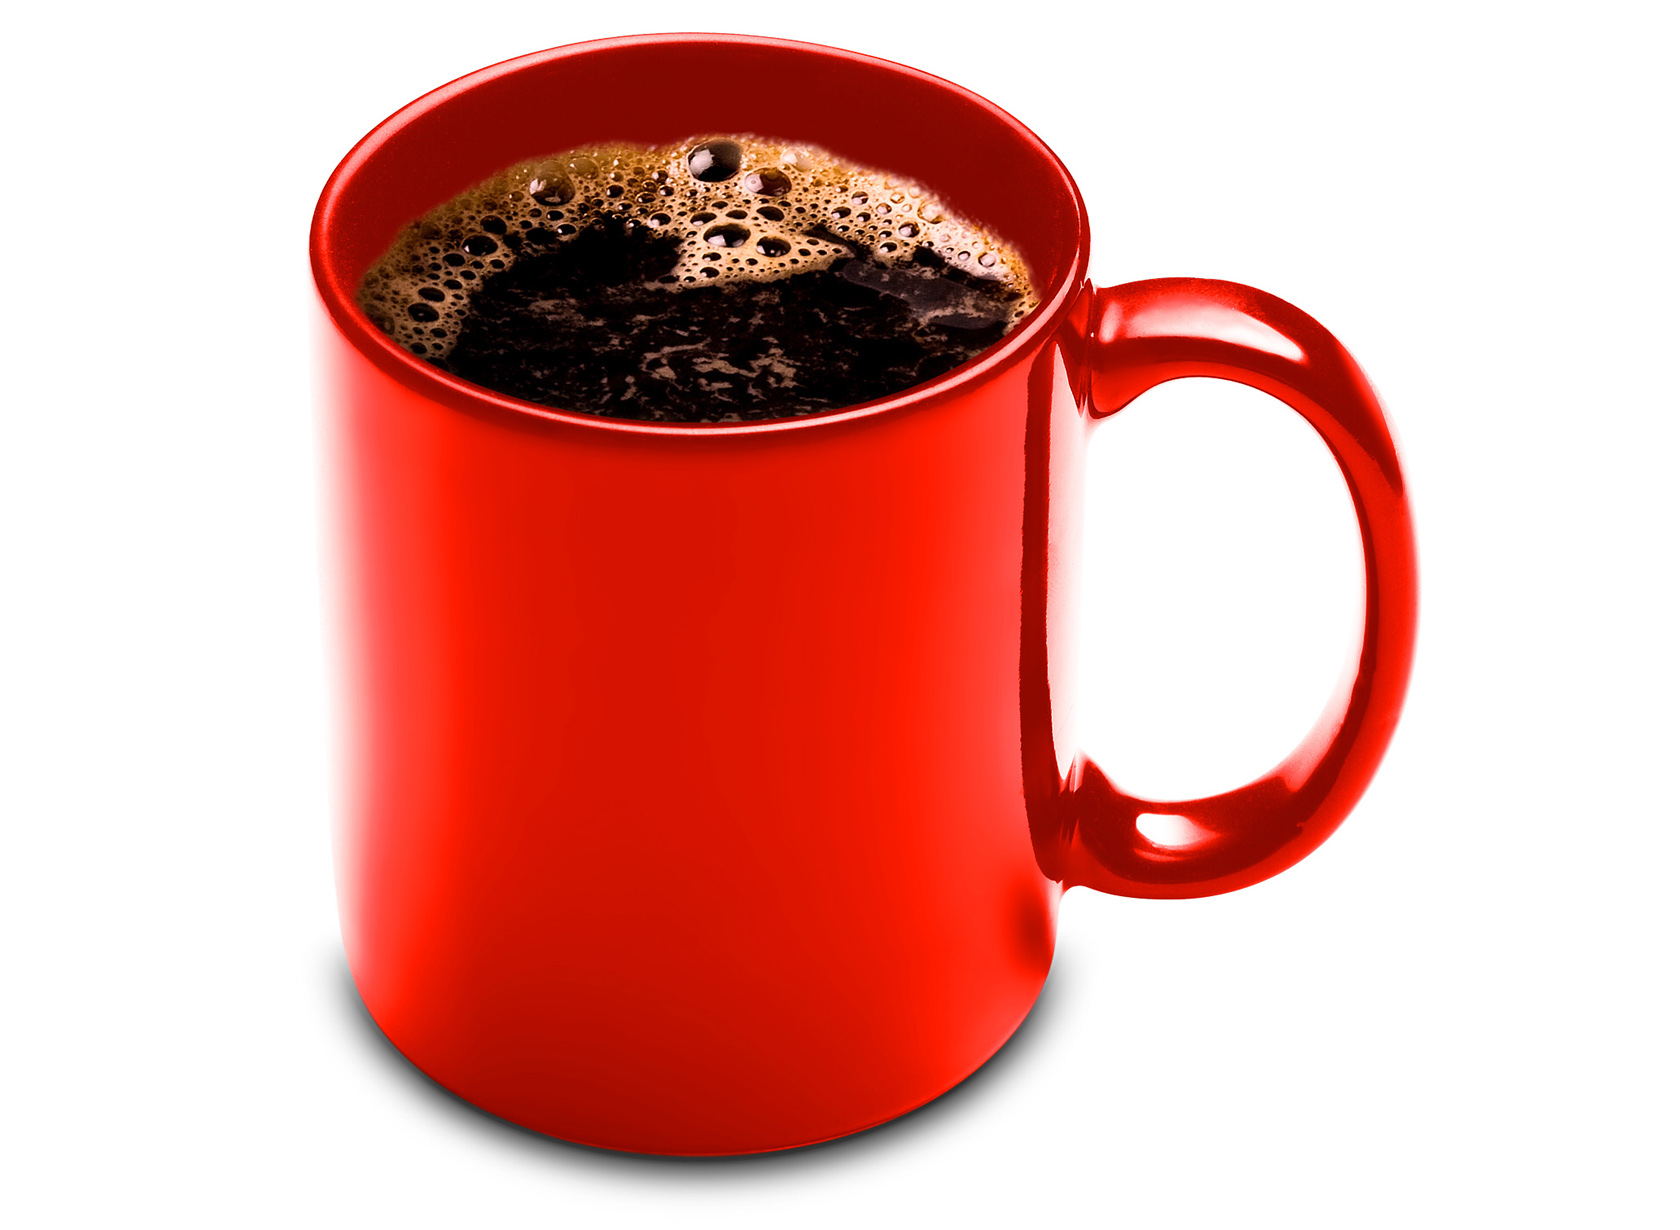 Mug clipart red cup Clip  The Download and